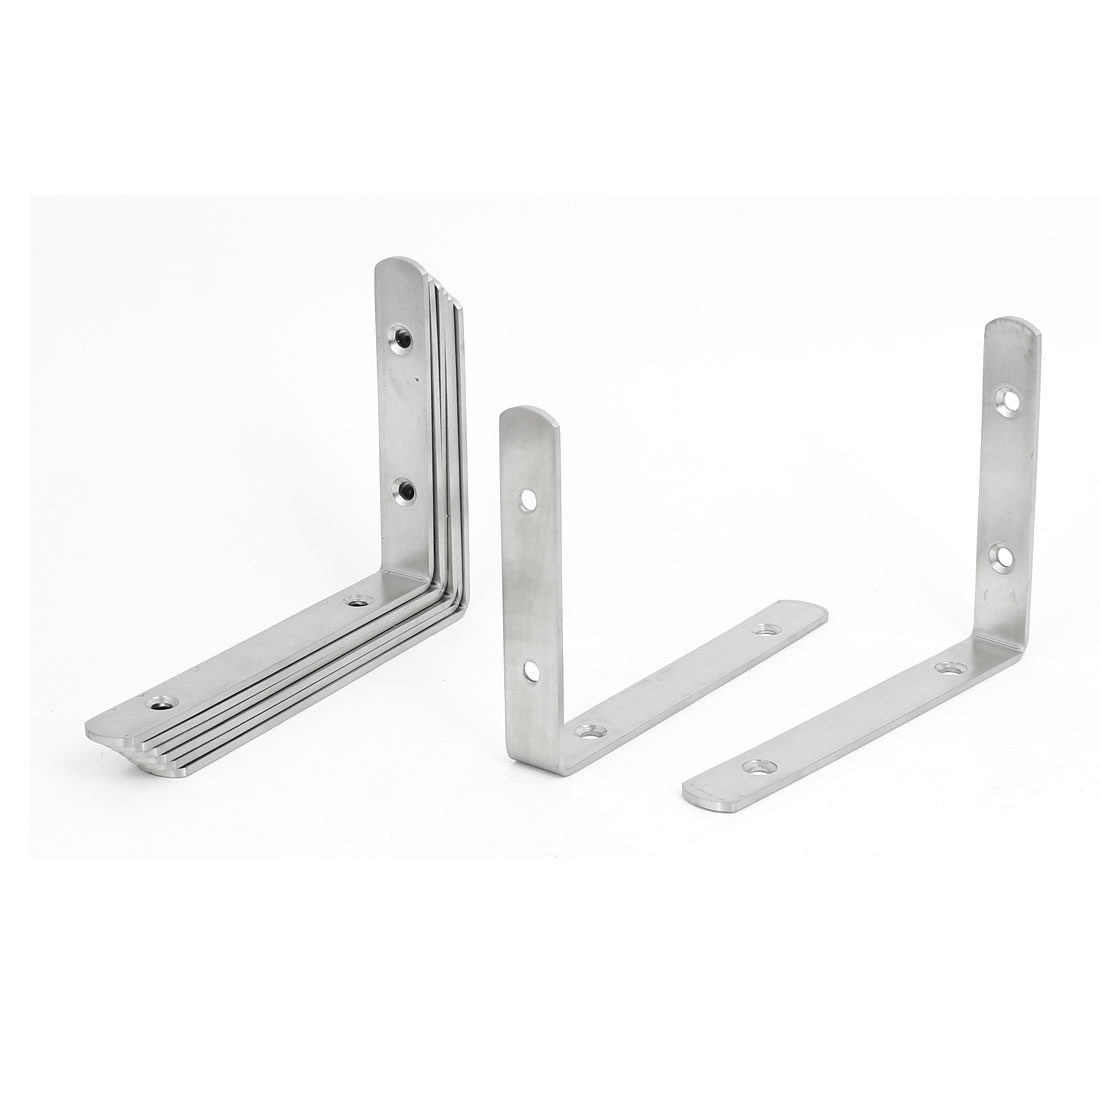 150mmx110mmx3mm Stainless Steel L Shaped Angle Brackets Shelf Supports 8pcs